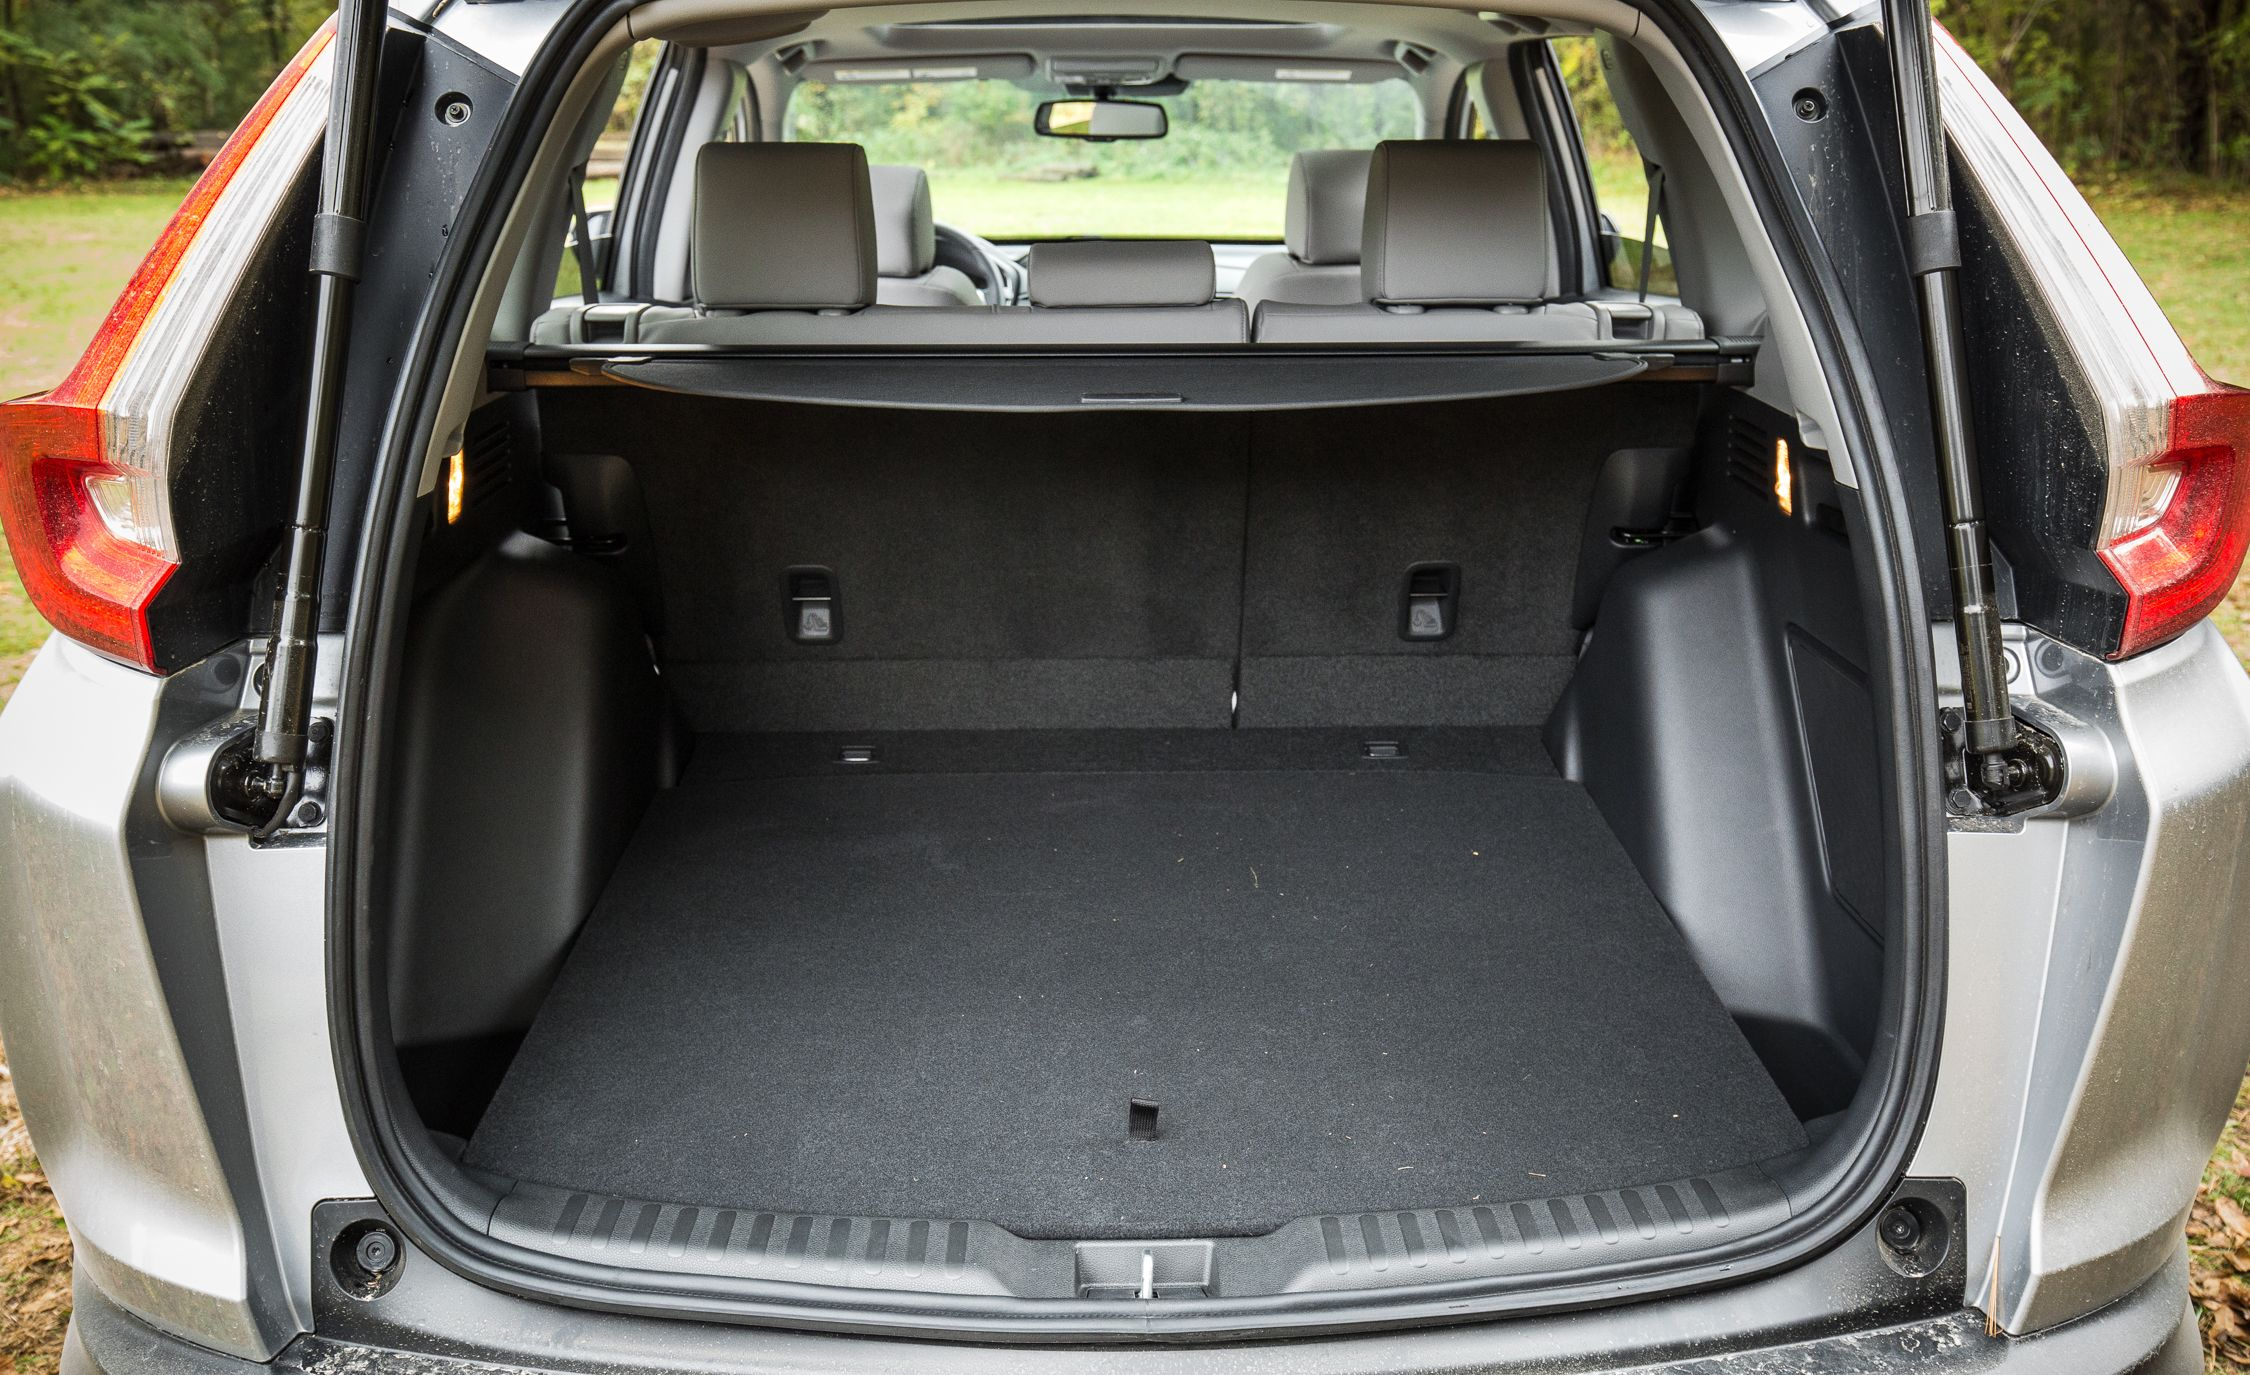 2017 Honda Cr V Cargo Space And Storage Review Car And